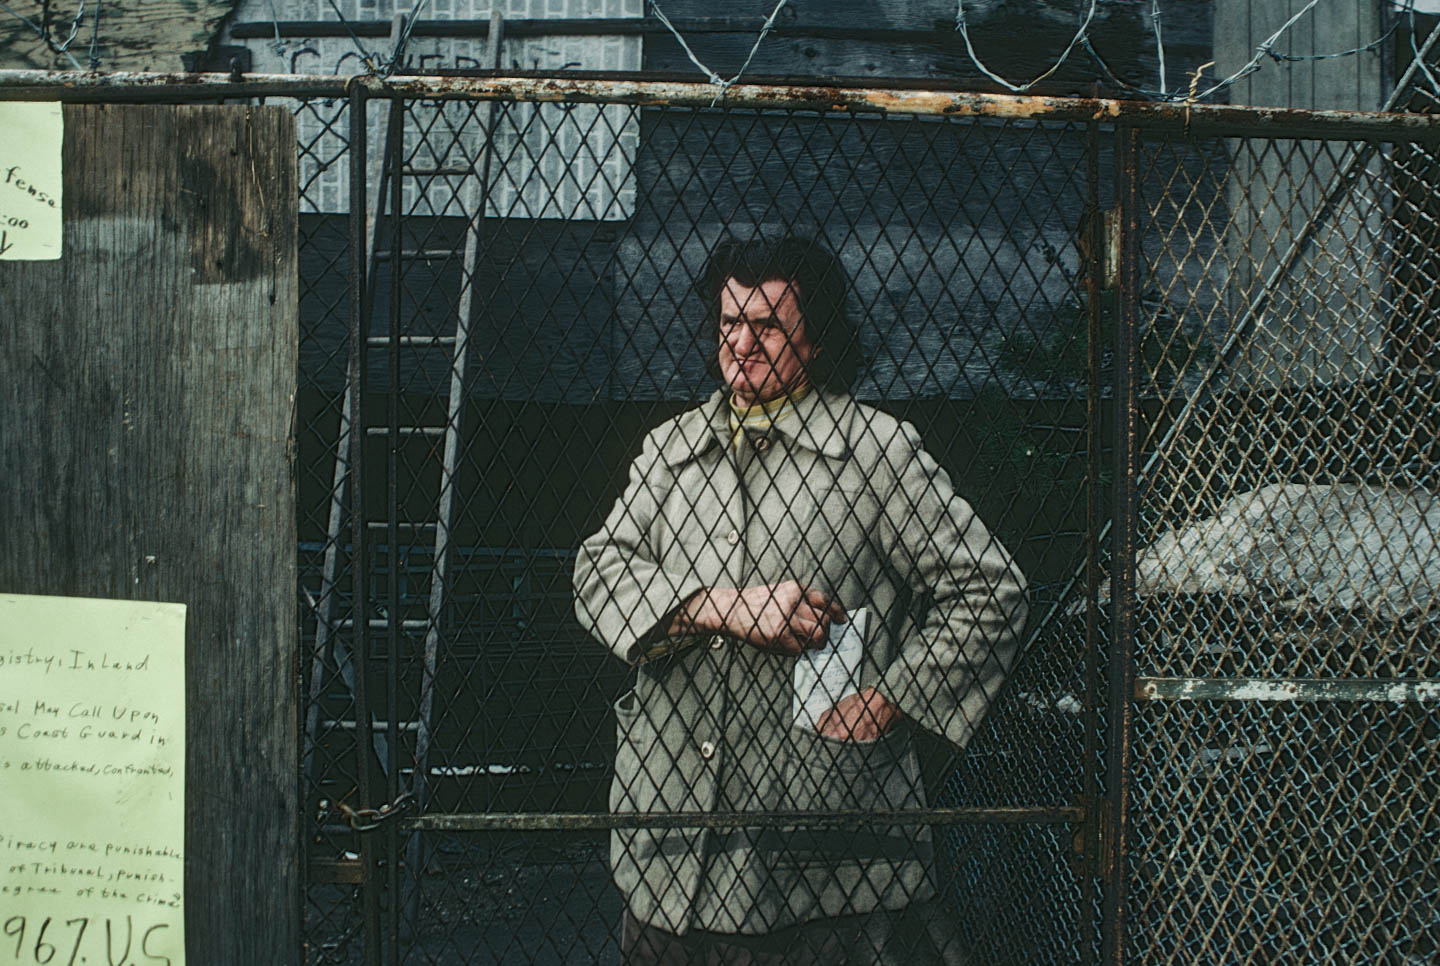 5-Kea at the back of her home facing the police, Camden Street at 14th Ave., Newark, 1987_